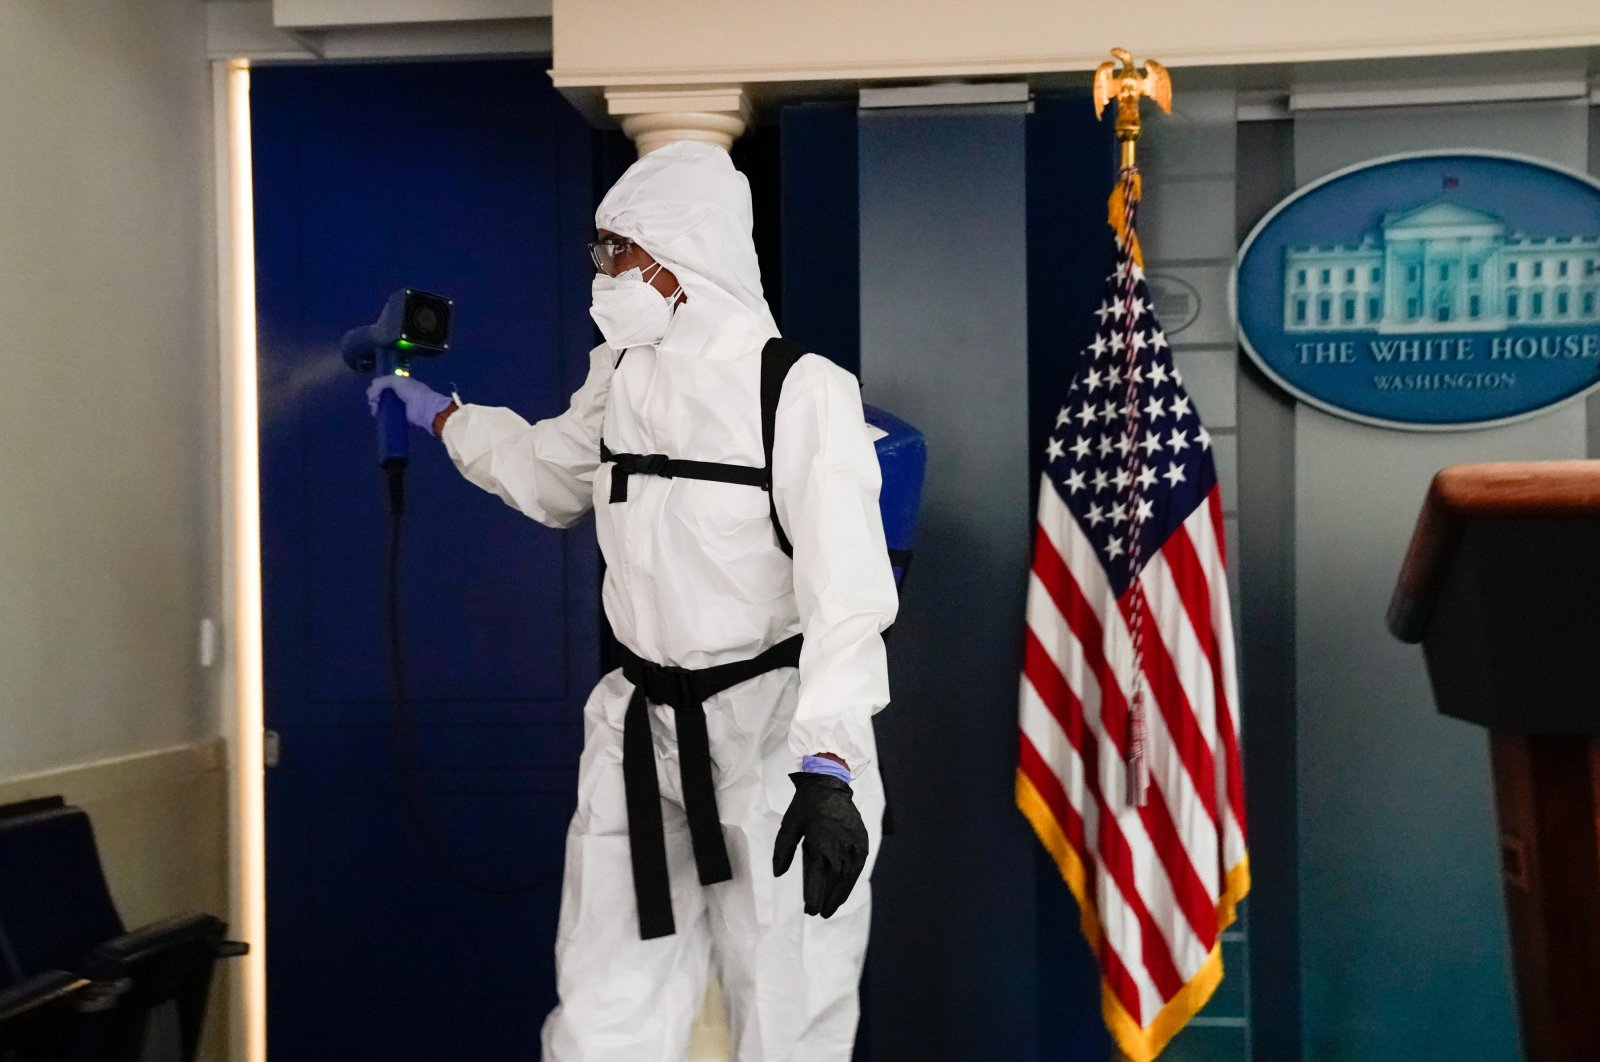 A member of the White House cleaning staff sprays the press briefing room the evening of U.S. President Donald Trump's return from Walter Reed Medical Center after contracting the coronavirus, in Washington, U.S., Oct. 5, 2020. (Reuters Photo)